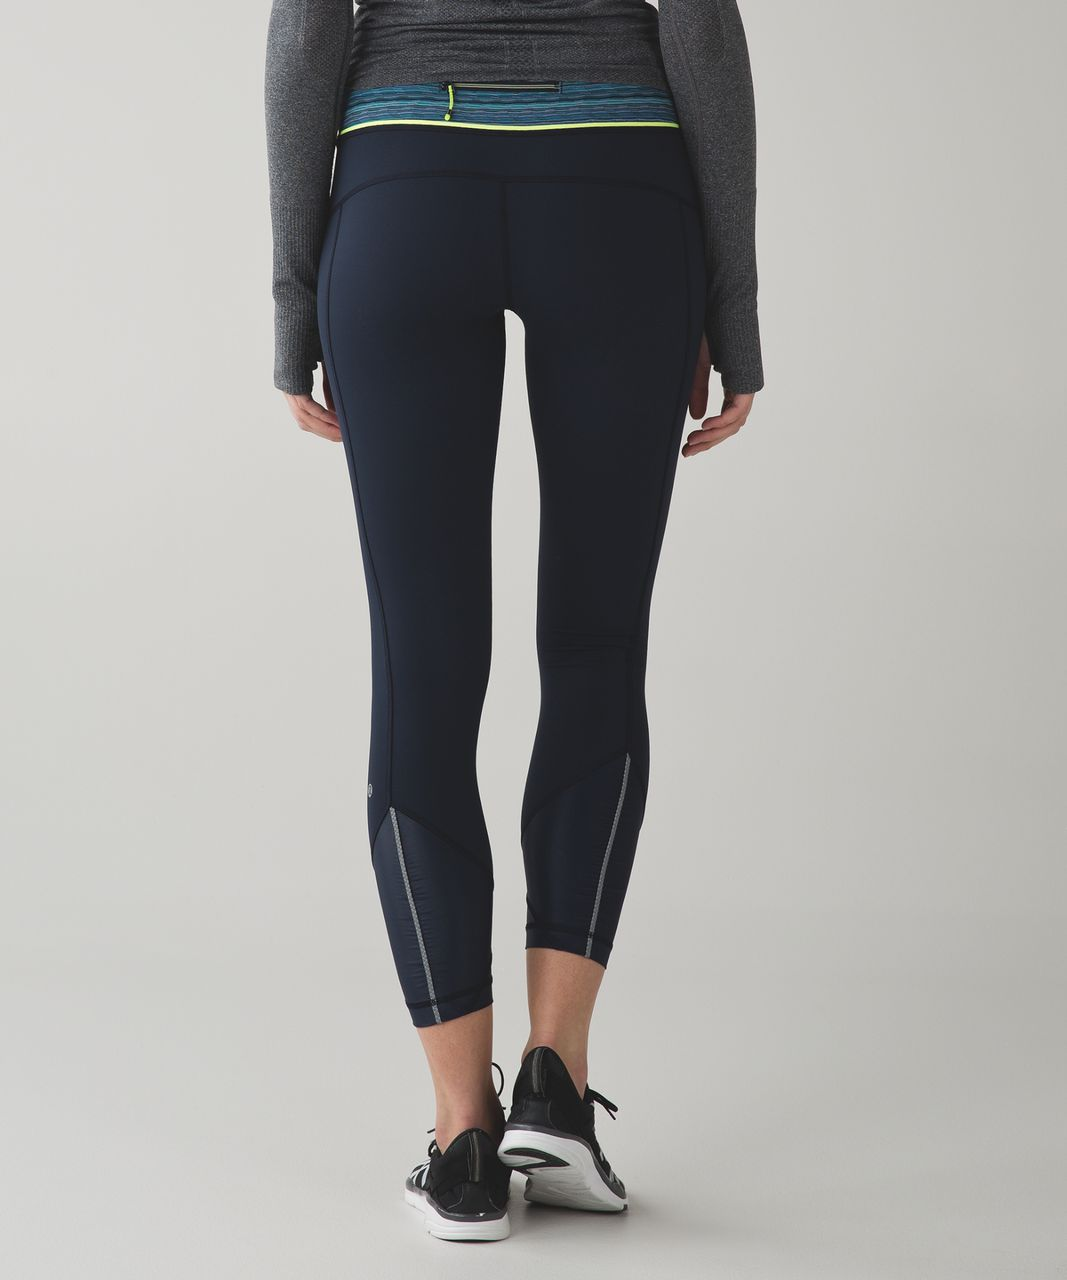 Lululemon Pace Queen Tight *Full-On Luxtreme - Inkwell / Space Dye Twist Naval Blue Peacock Blue